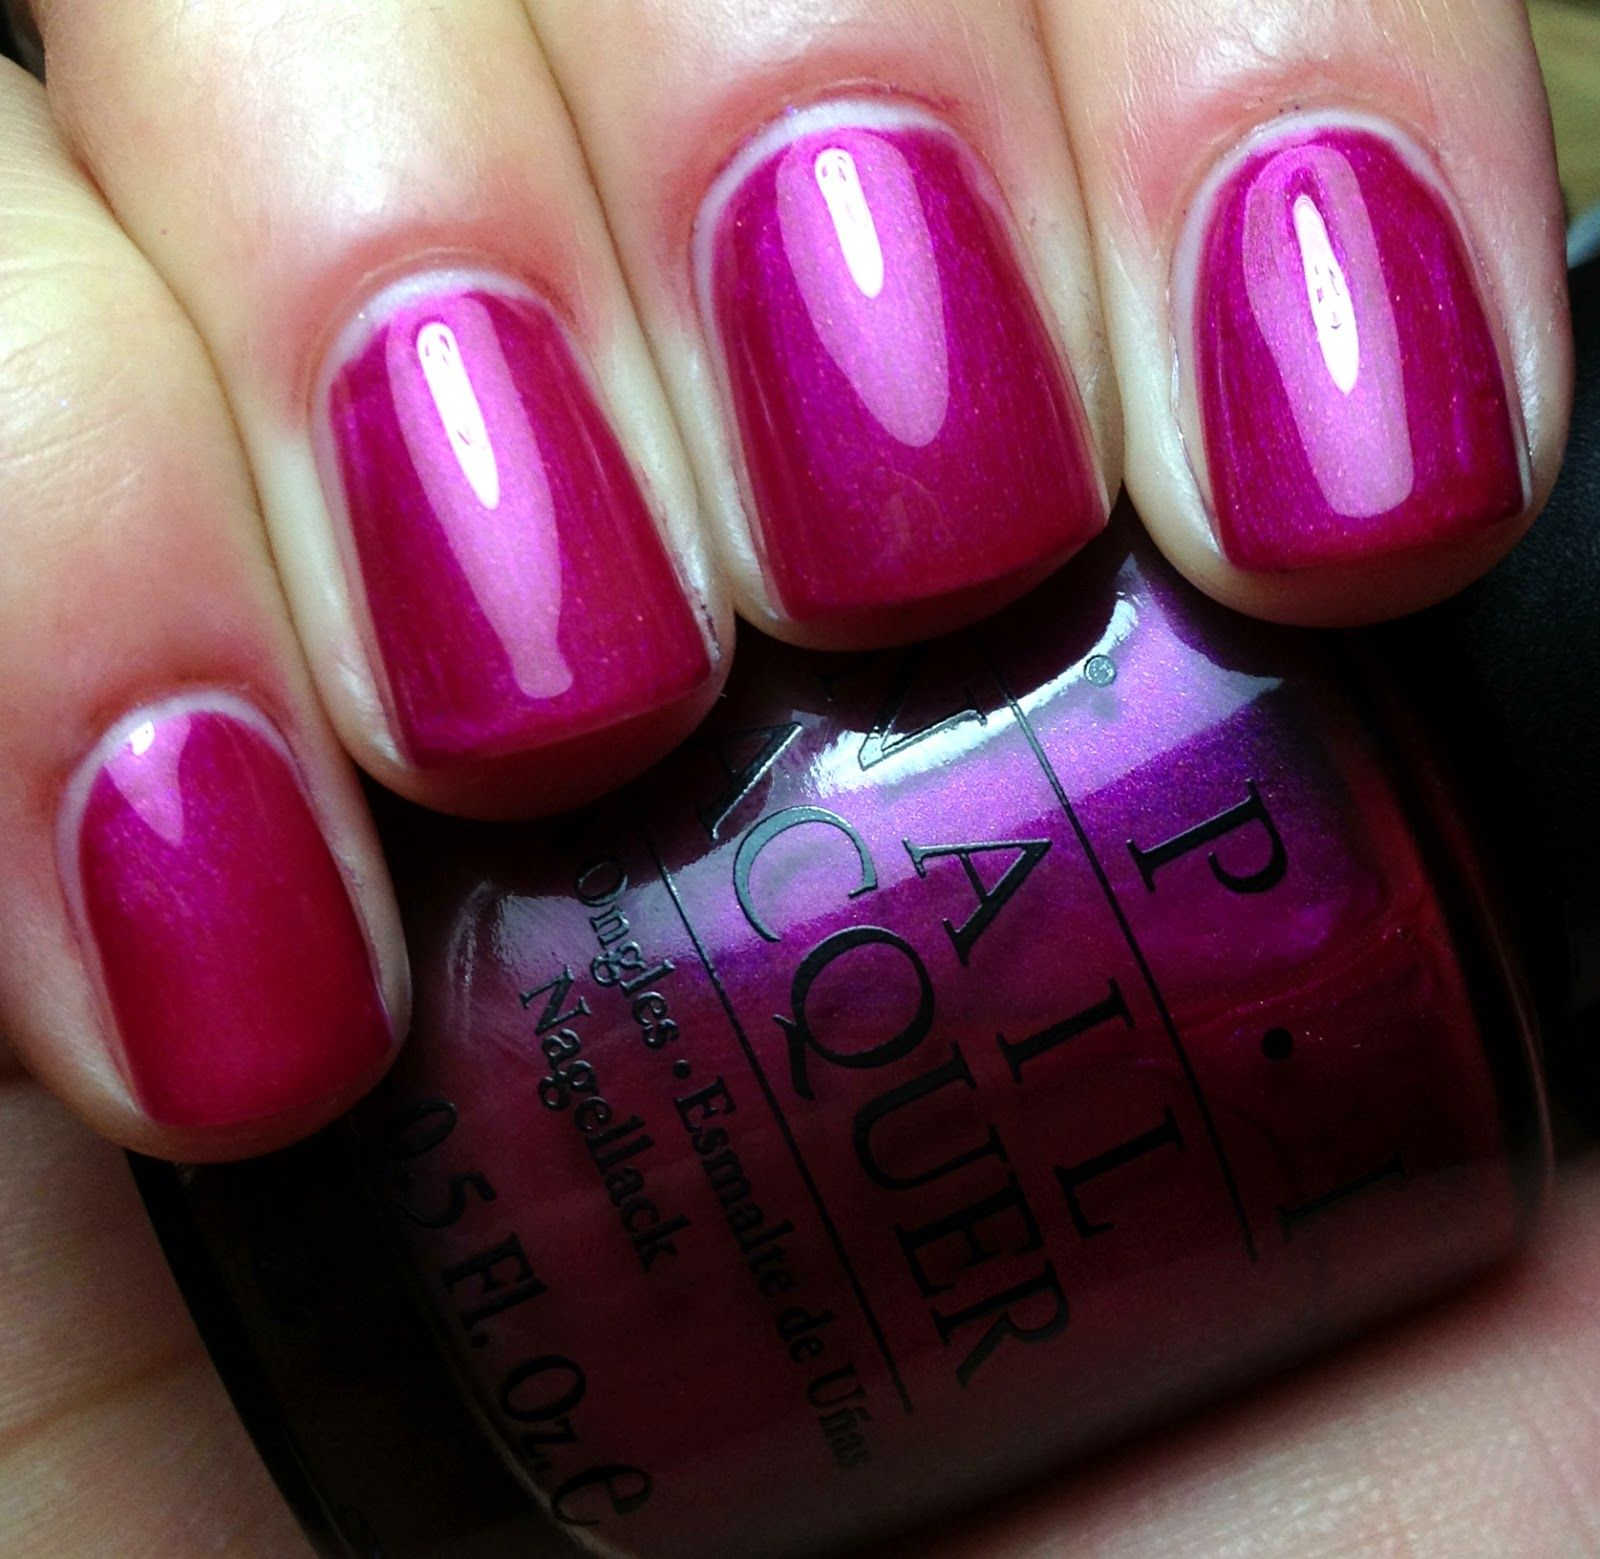 OPI Jewel of India. Sadly, I think this marvelous color has been ...